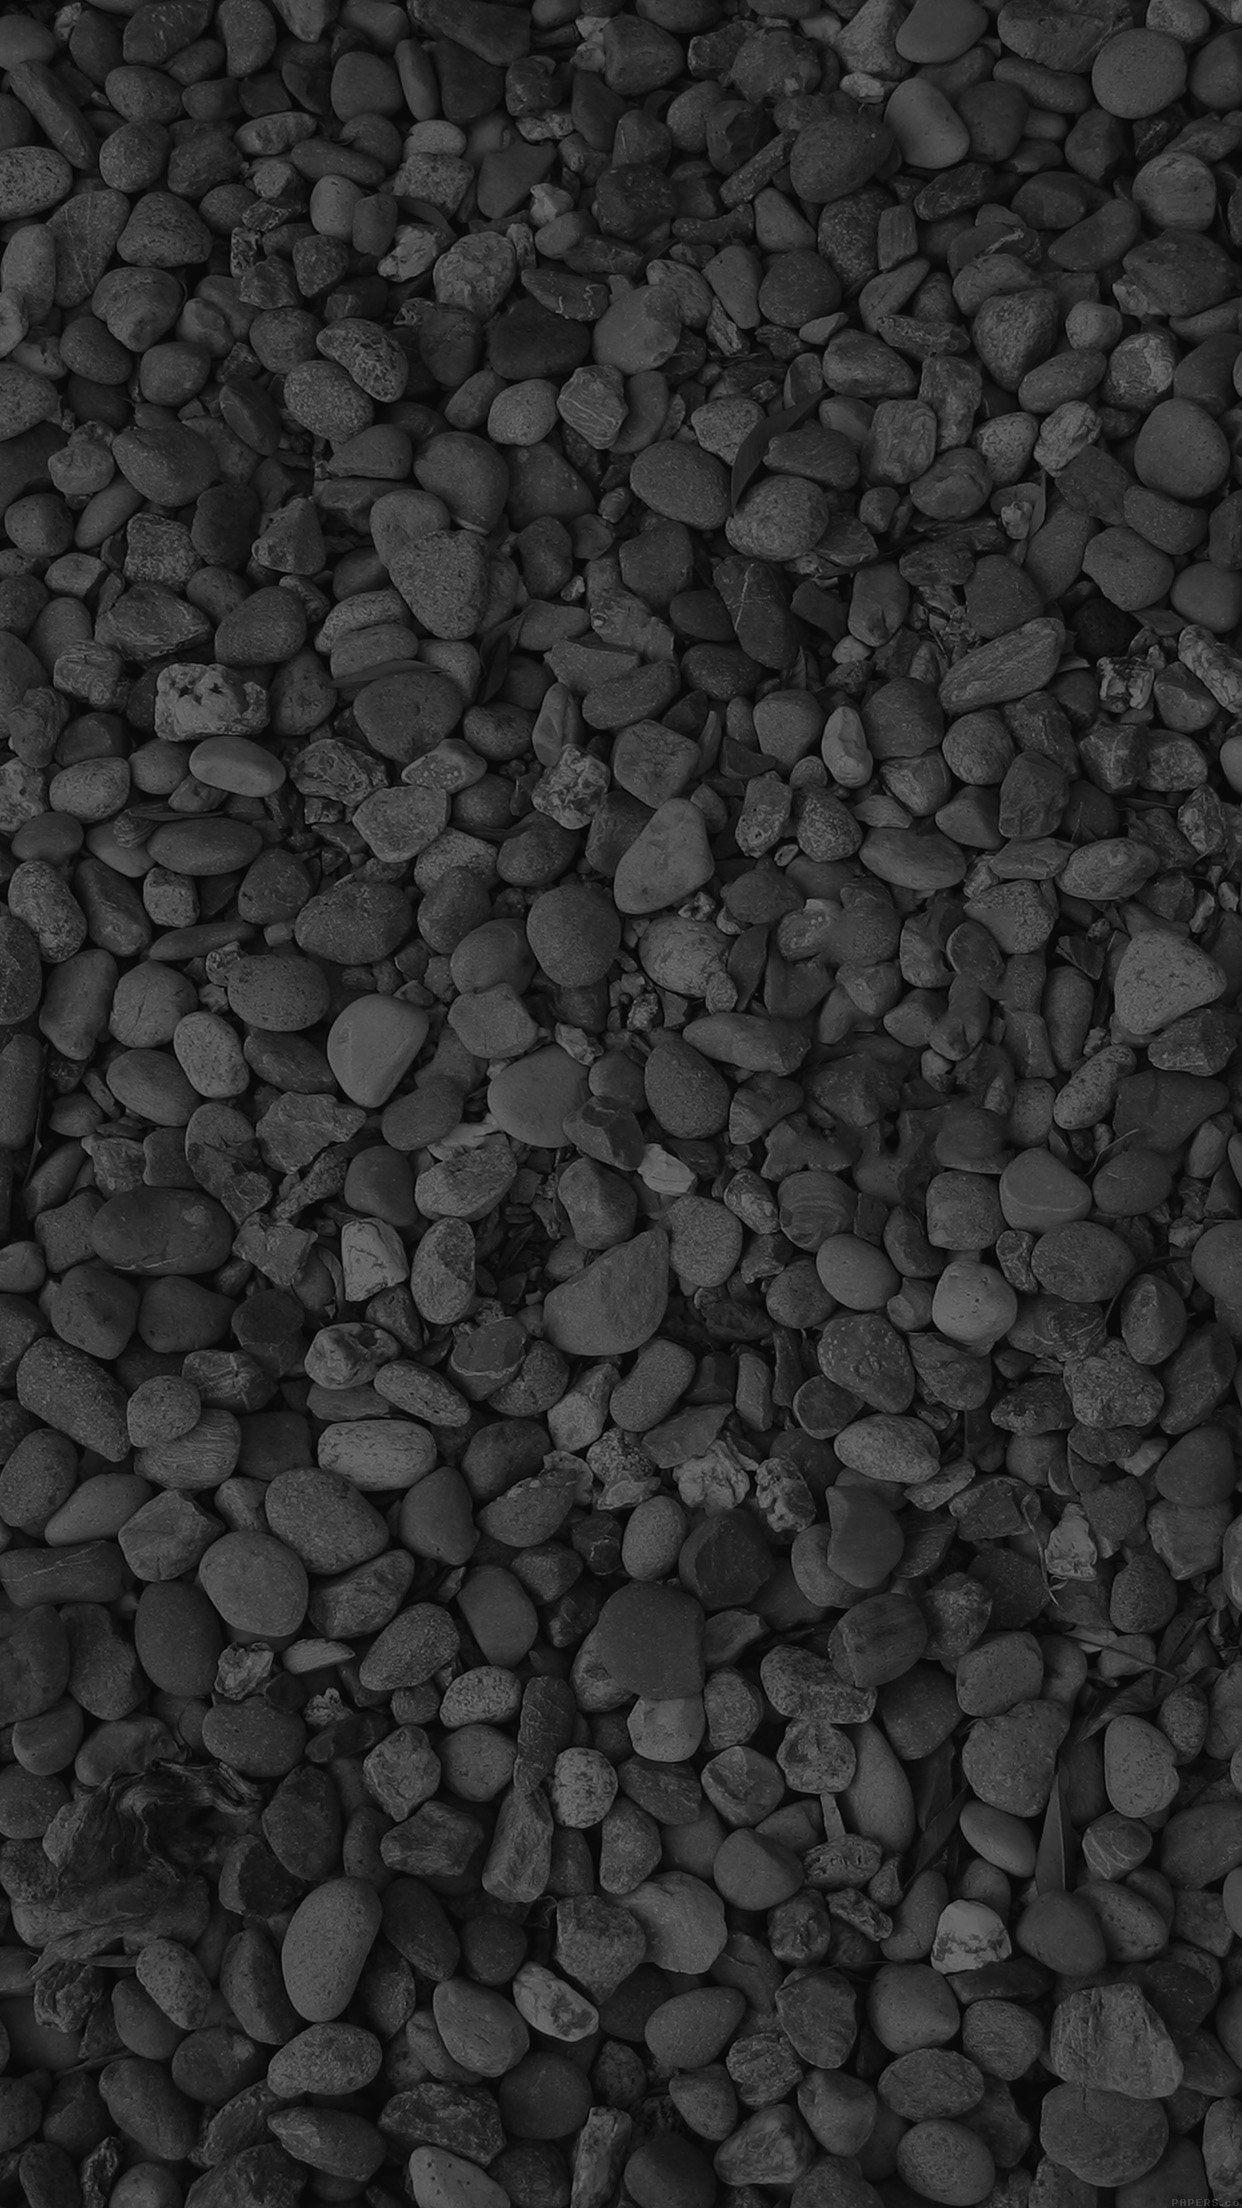 Black Stone Wallpapers Hd Wallpaper Cave